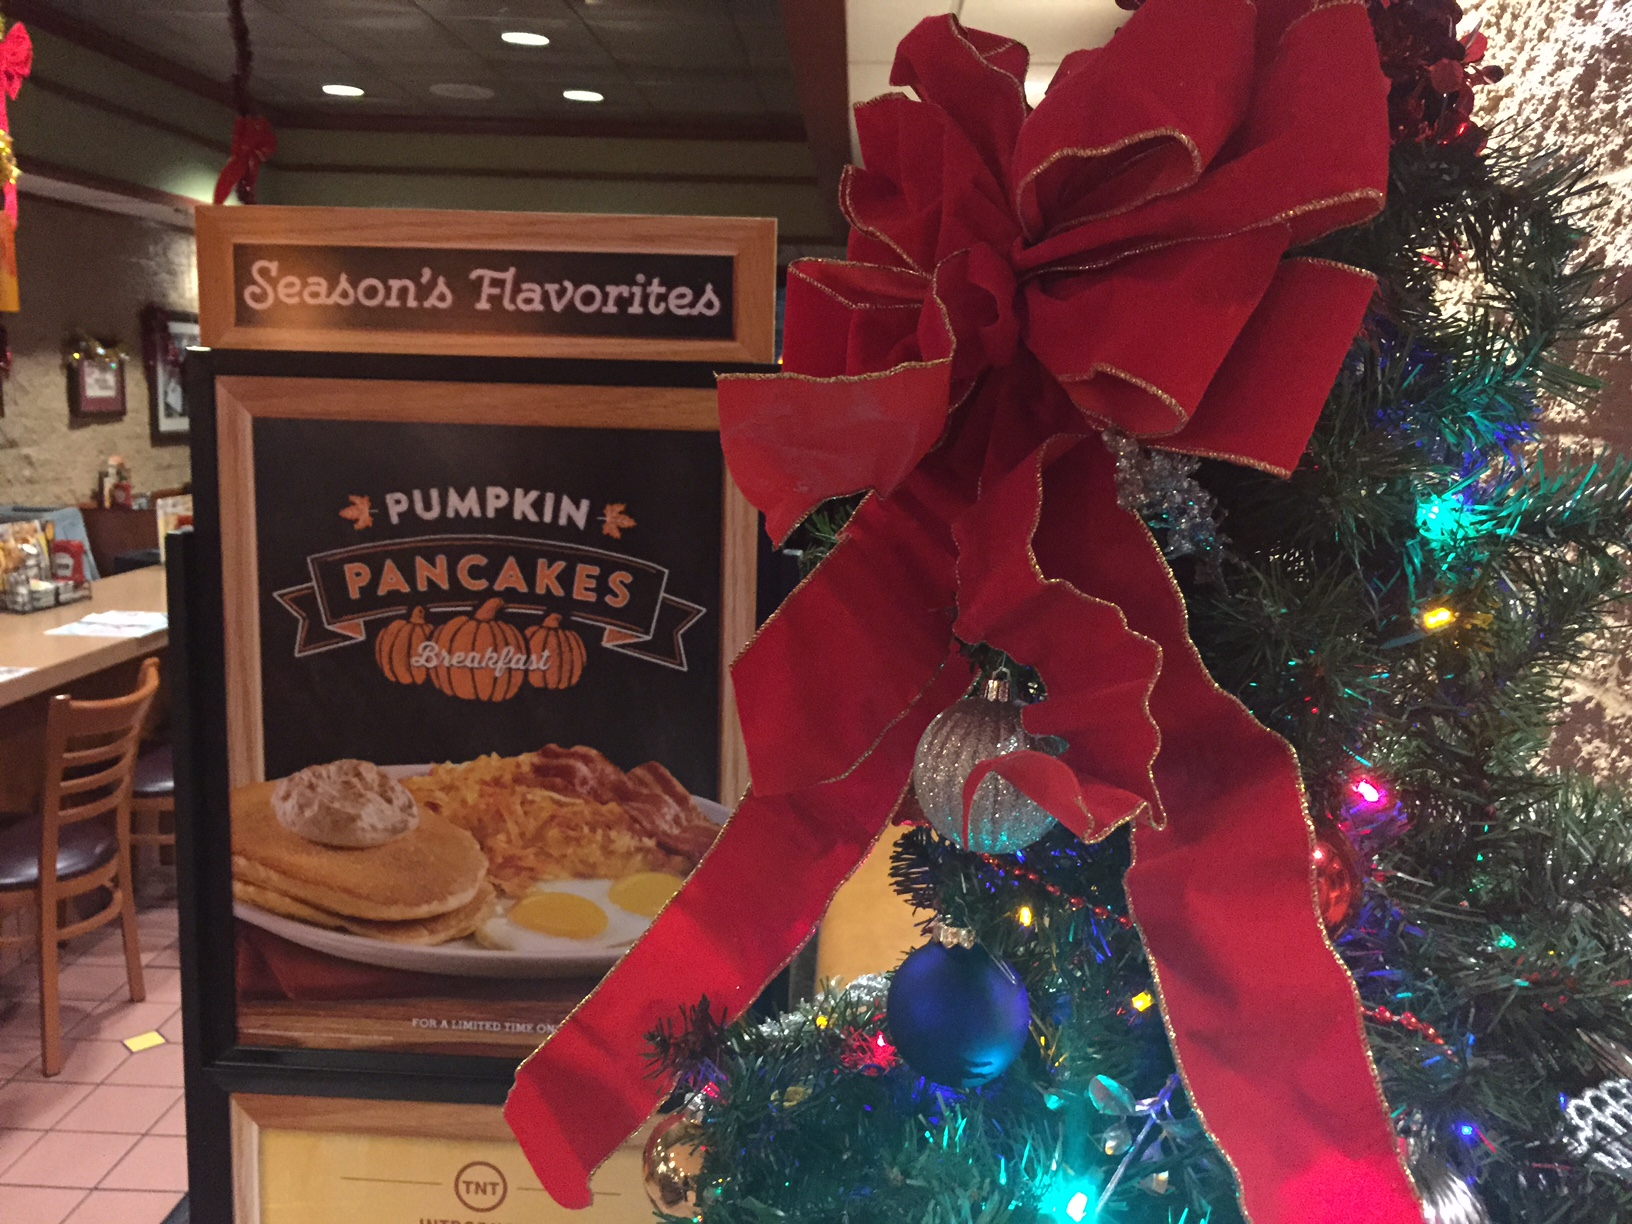 Kid's Eat Free and Seasonal Favorites at Denny's - OC Mom Dining